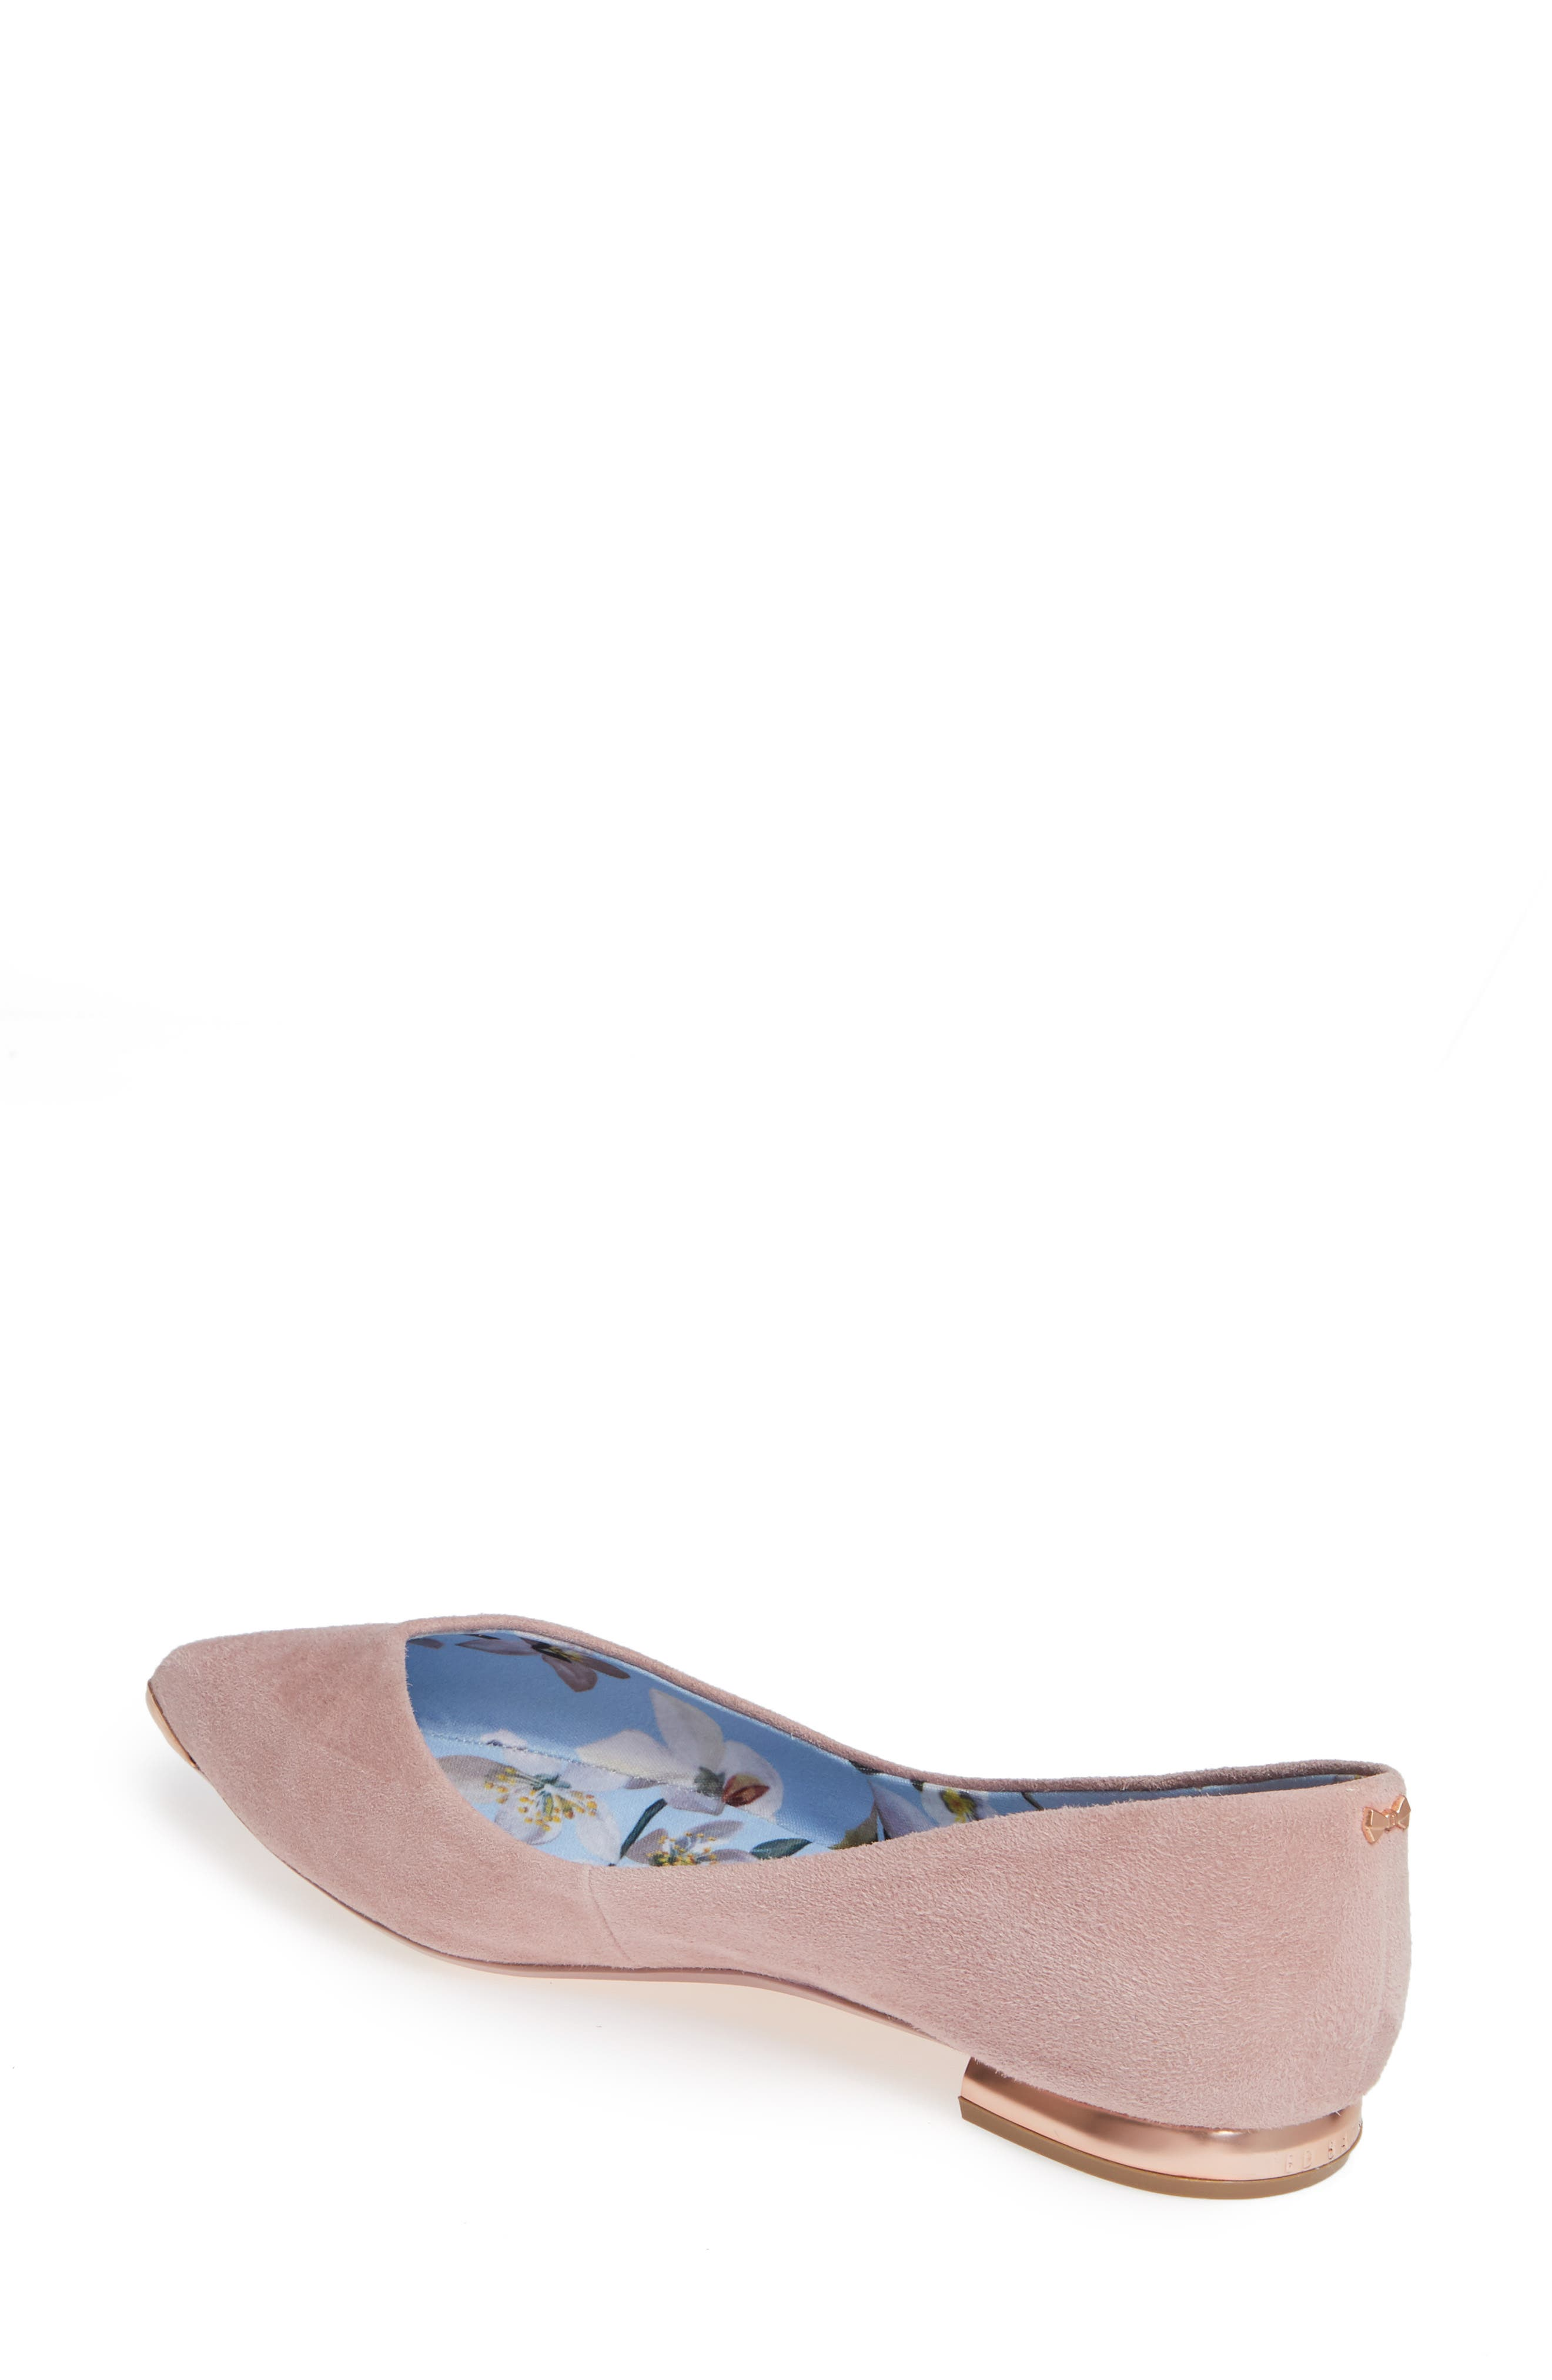 TED BAKER LONDON,                             Mancies Pointy Toe Flat,                             Alternate thumbnail 2, color,                             WINTER ROSE SUEDE